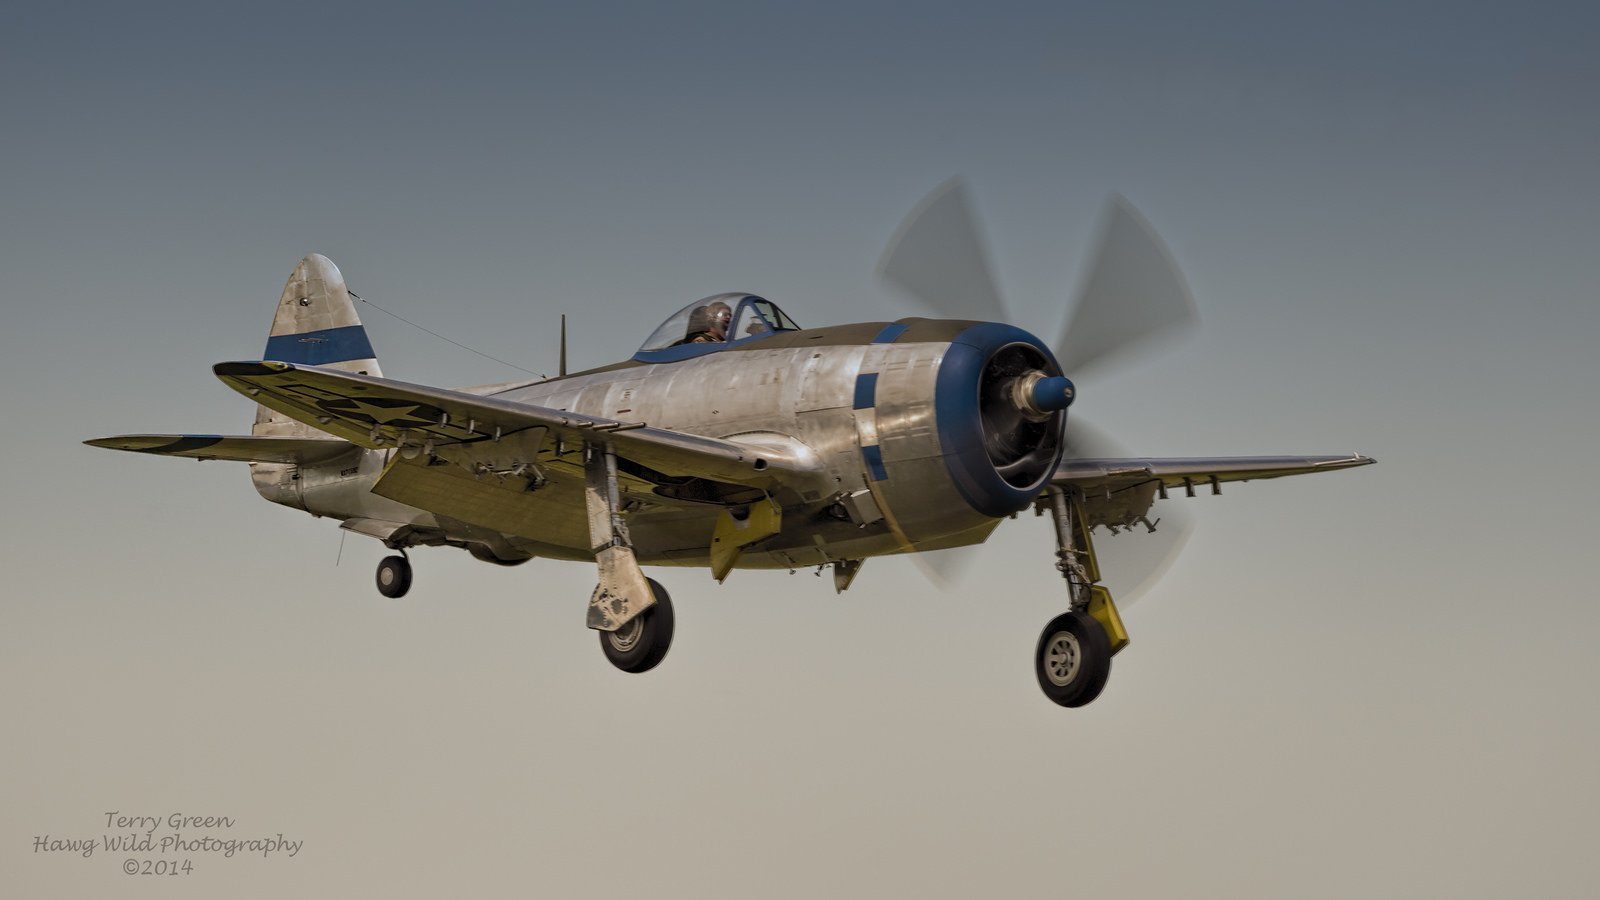 P 47 Thunderbolt Wallpaper P-47 Thunderbolt wallpaper